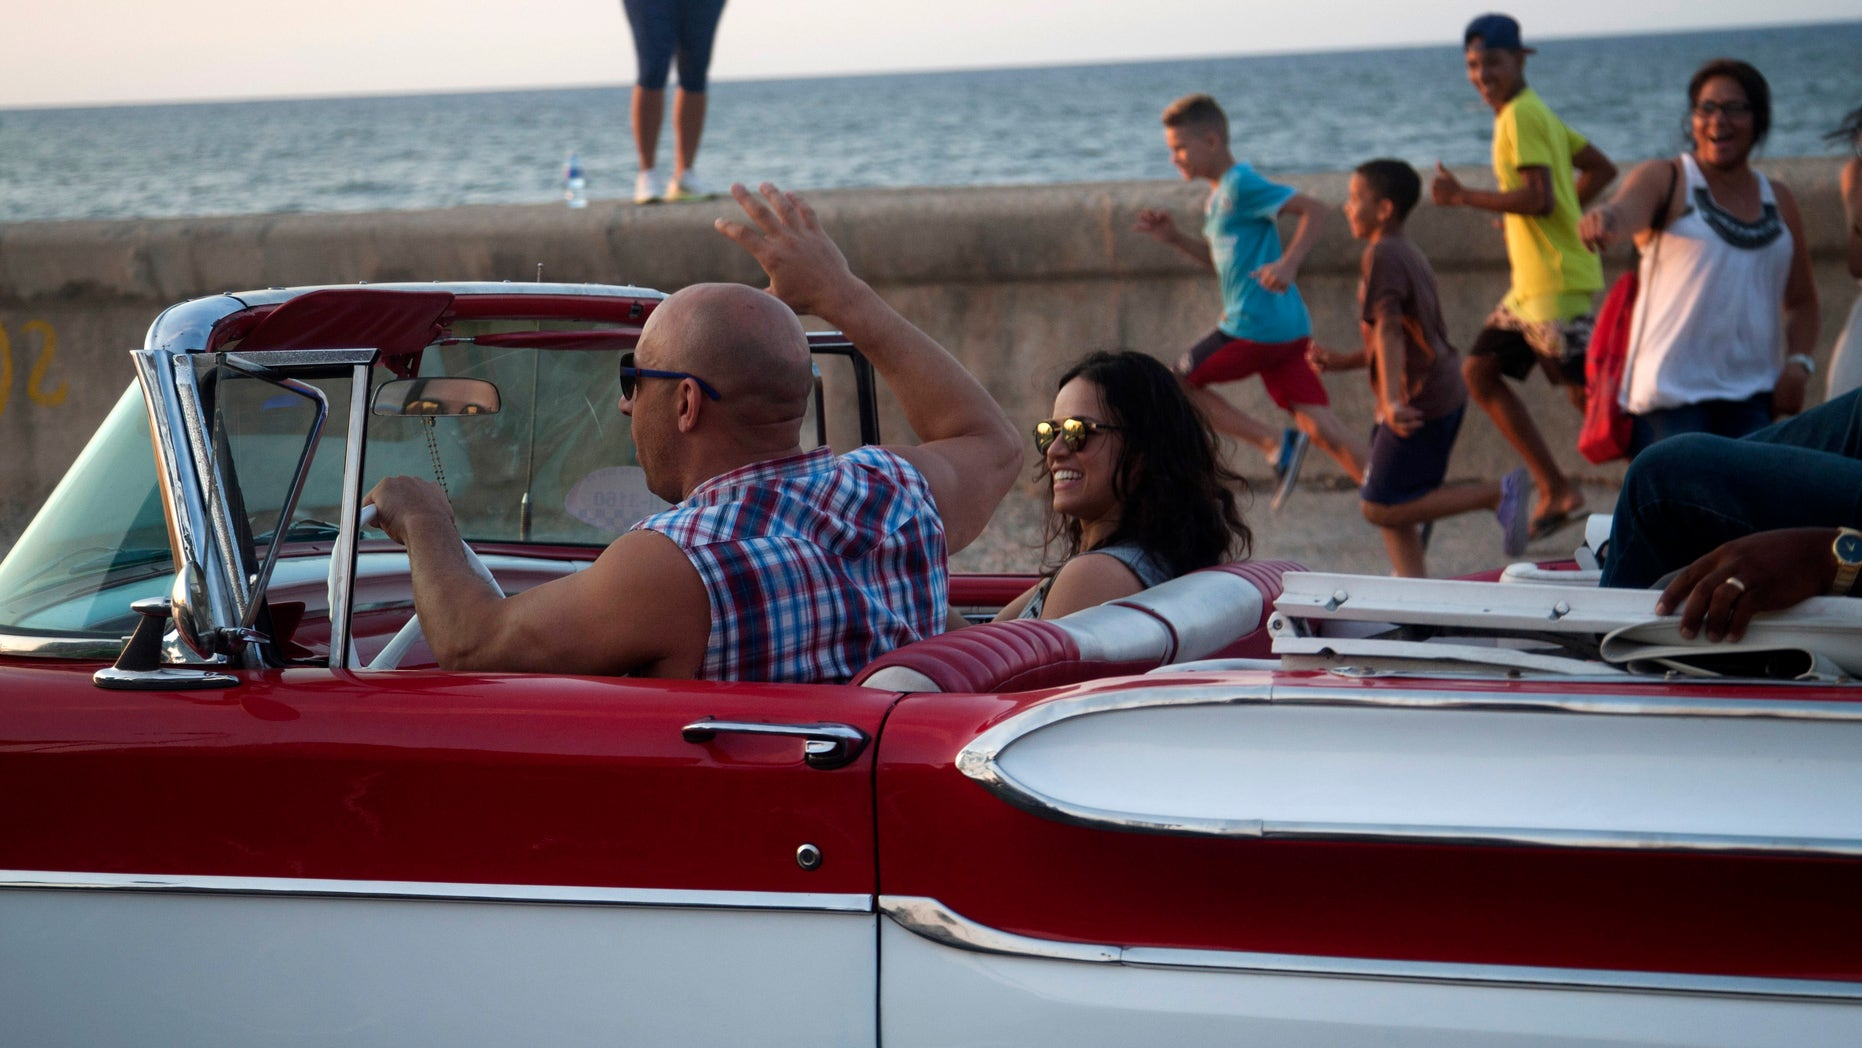 Actors Vin Diesel and Michelle Rodriguez on Havana's malecon, Thursday, April 28, 2016.